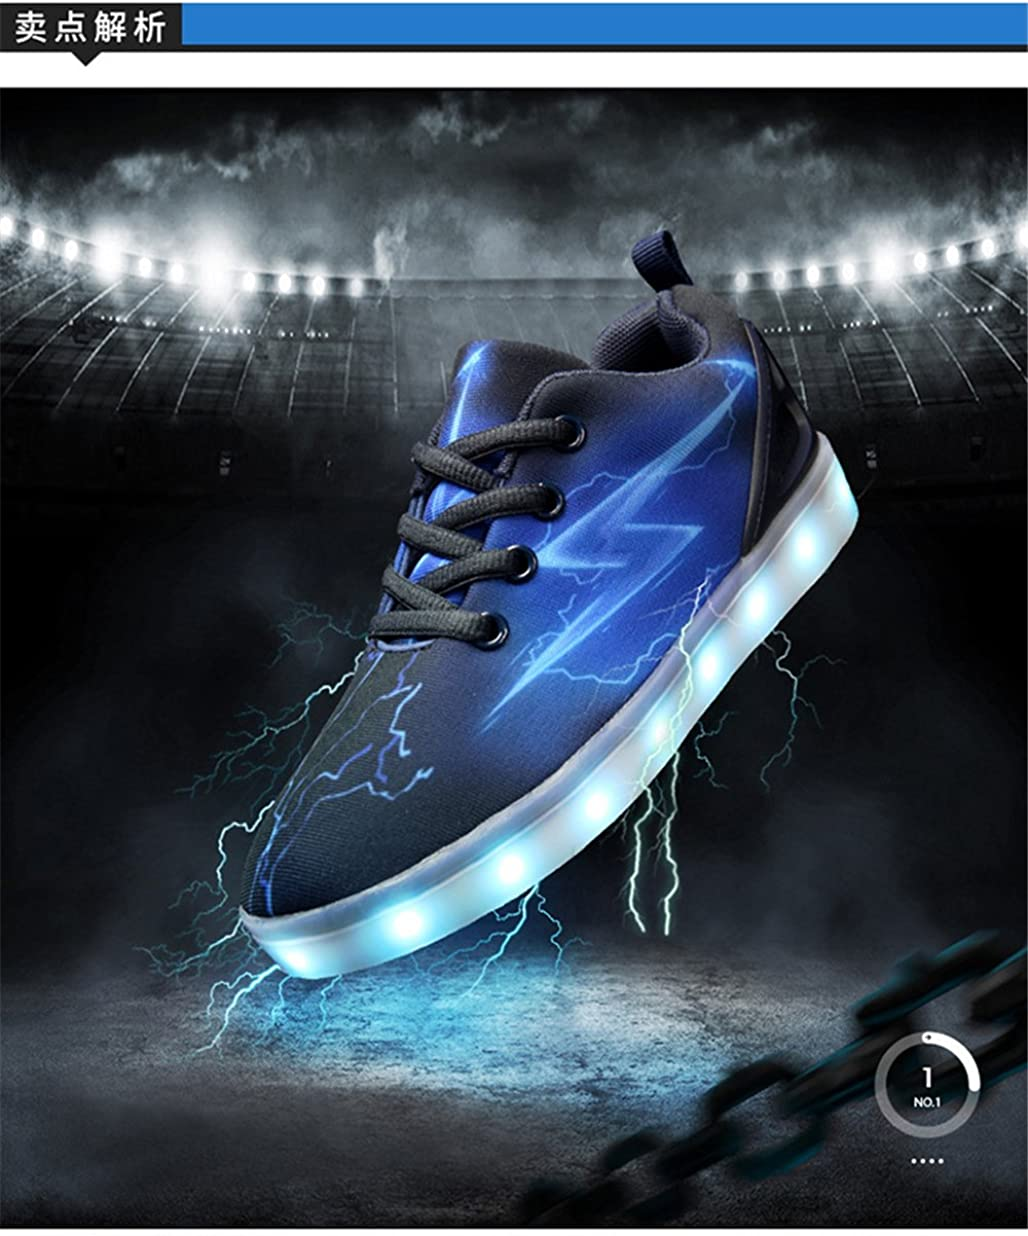 pit4tk LED Light Up Shoes USB Charging Flashing Sneakers for Kids Boys Girls for Christmas